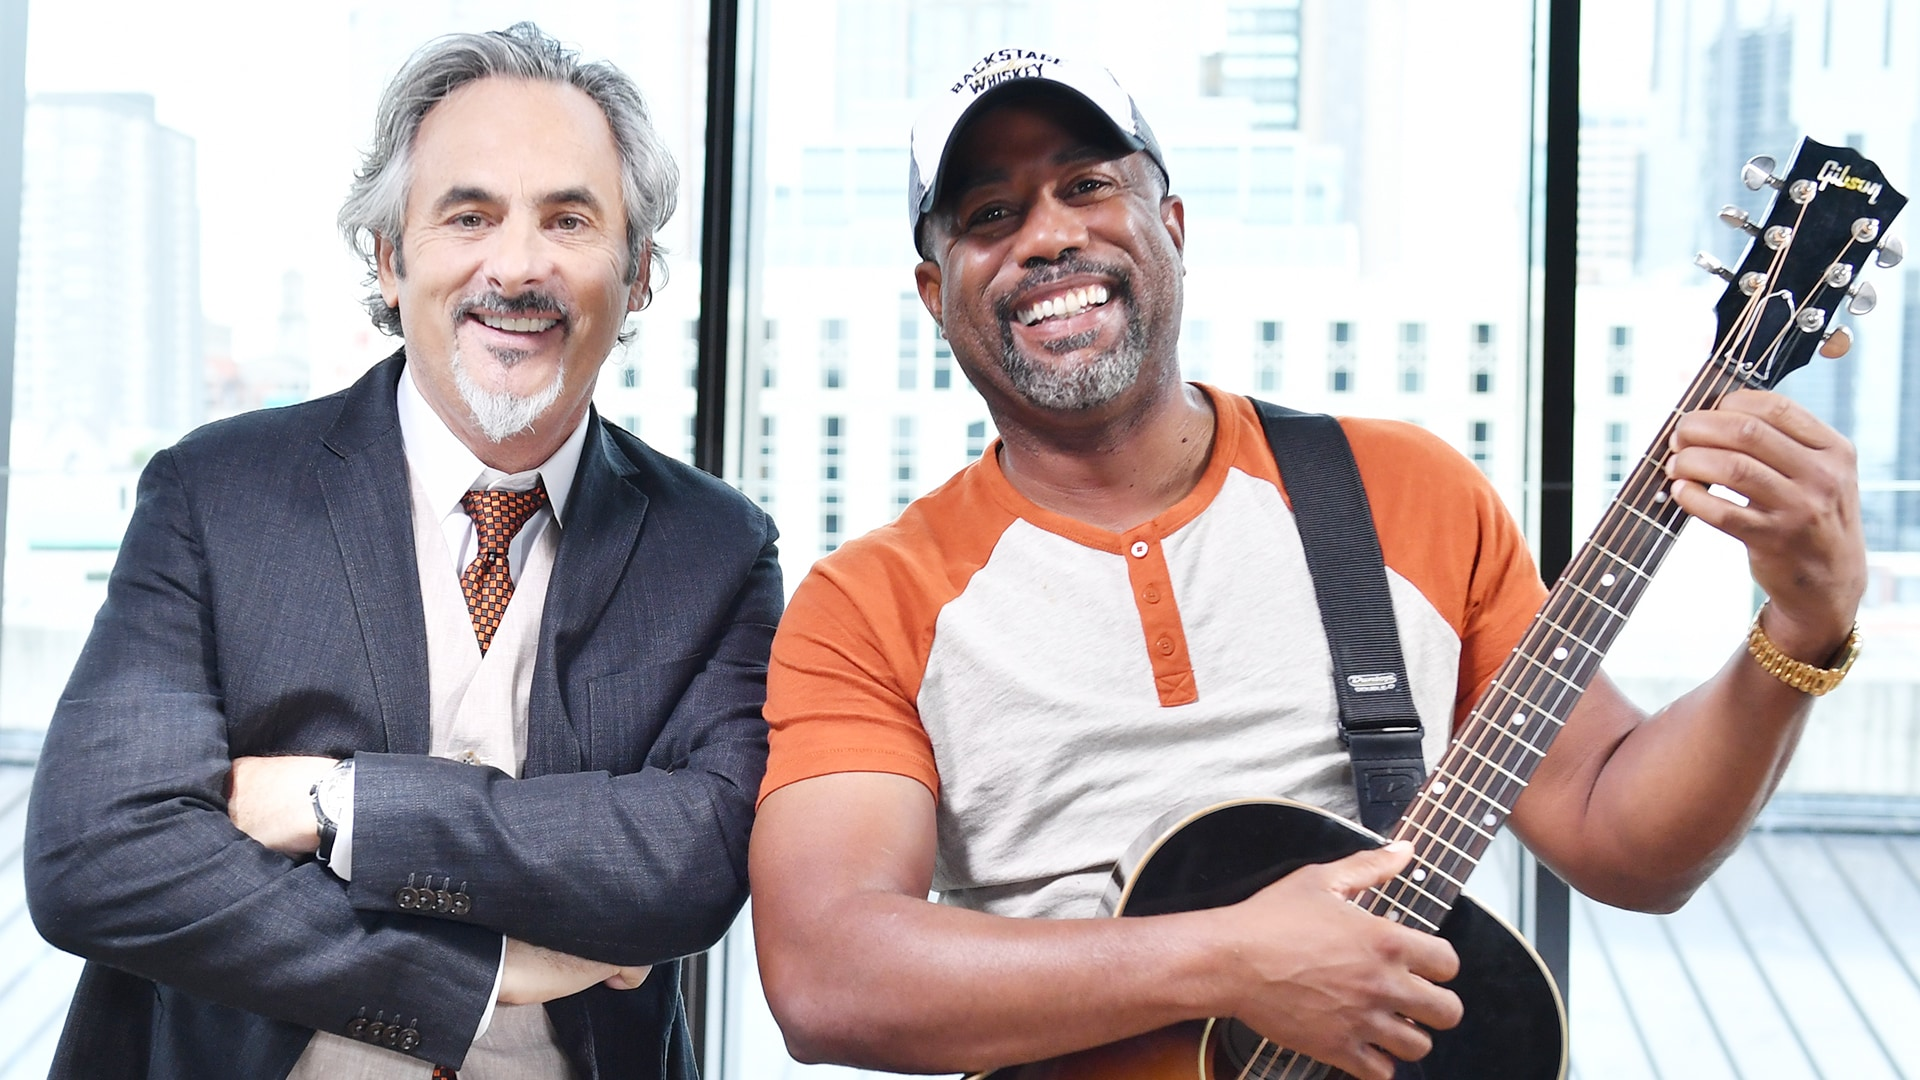 Darius rucker interview with david feherty monday 828 9pm et during the interview darius rucker tells feherty how he squeezes golf into his busy schedule while on tour watch the preview below m4hsunfo